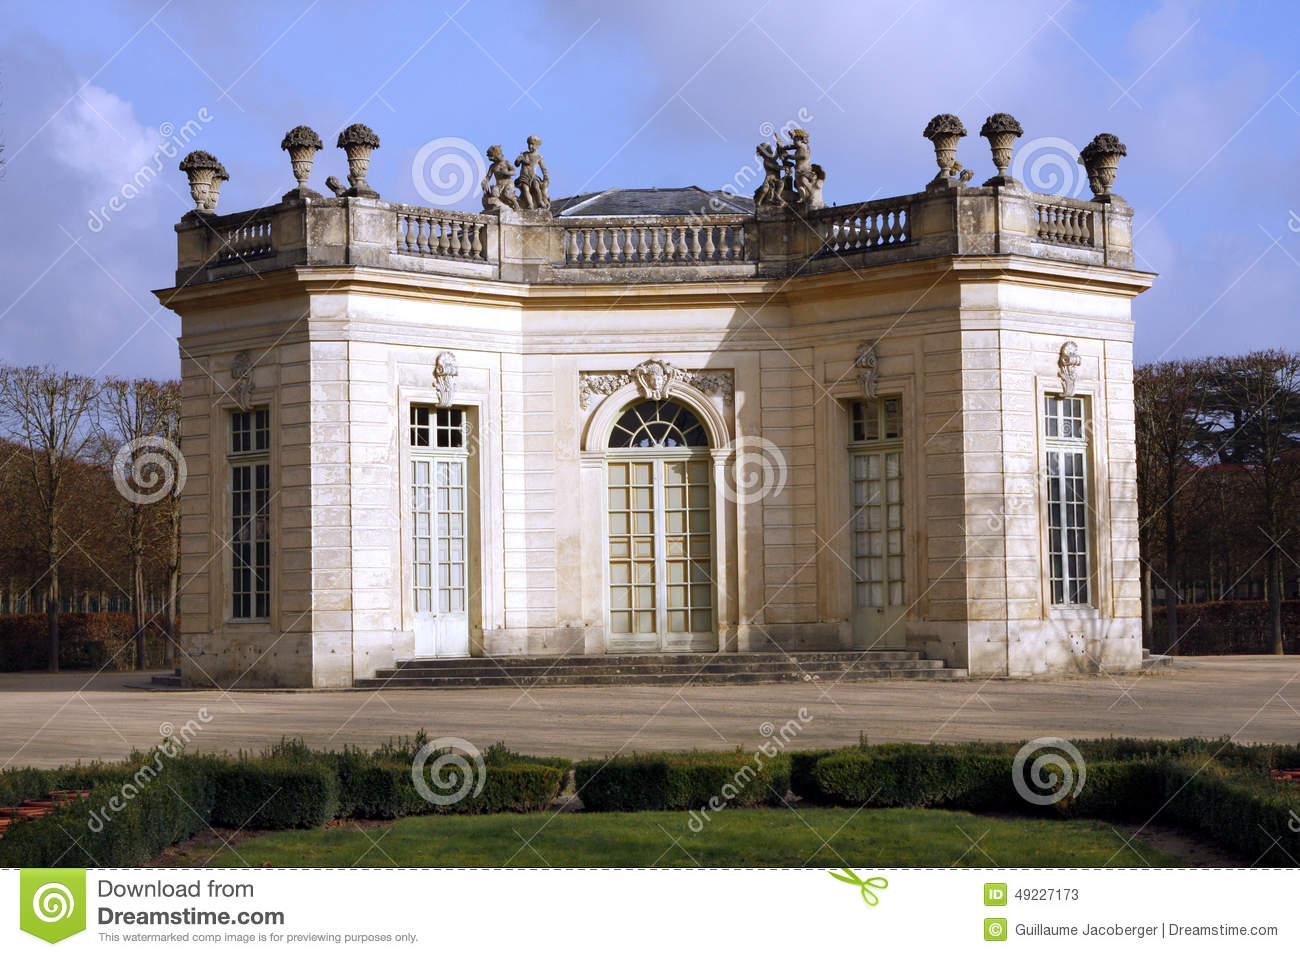 The Pavillon Français - Versailles